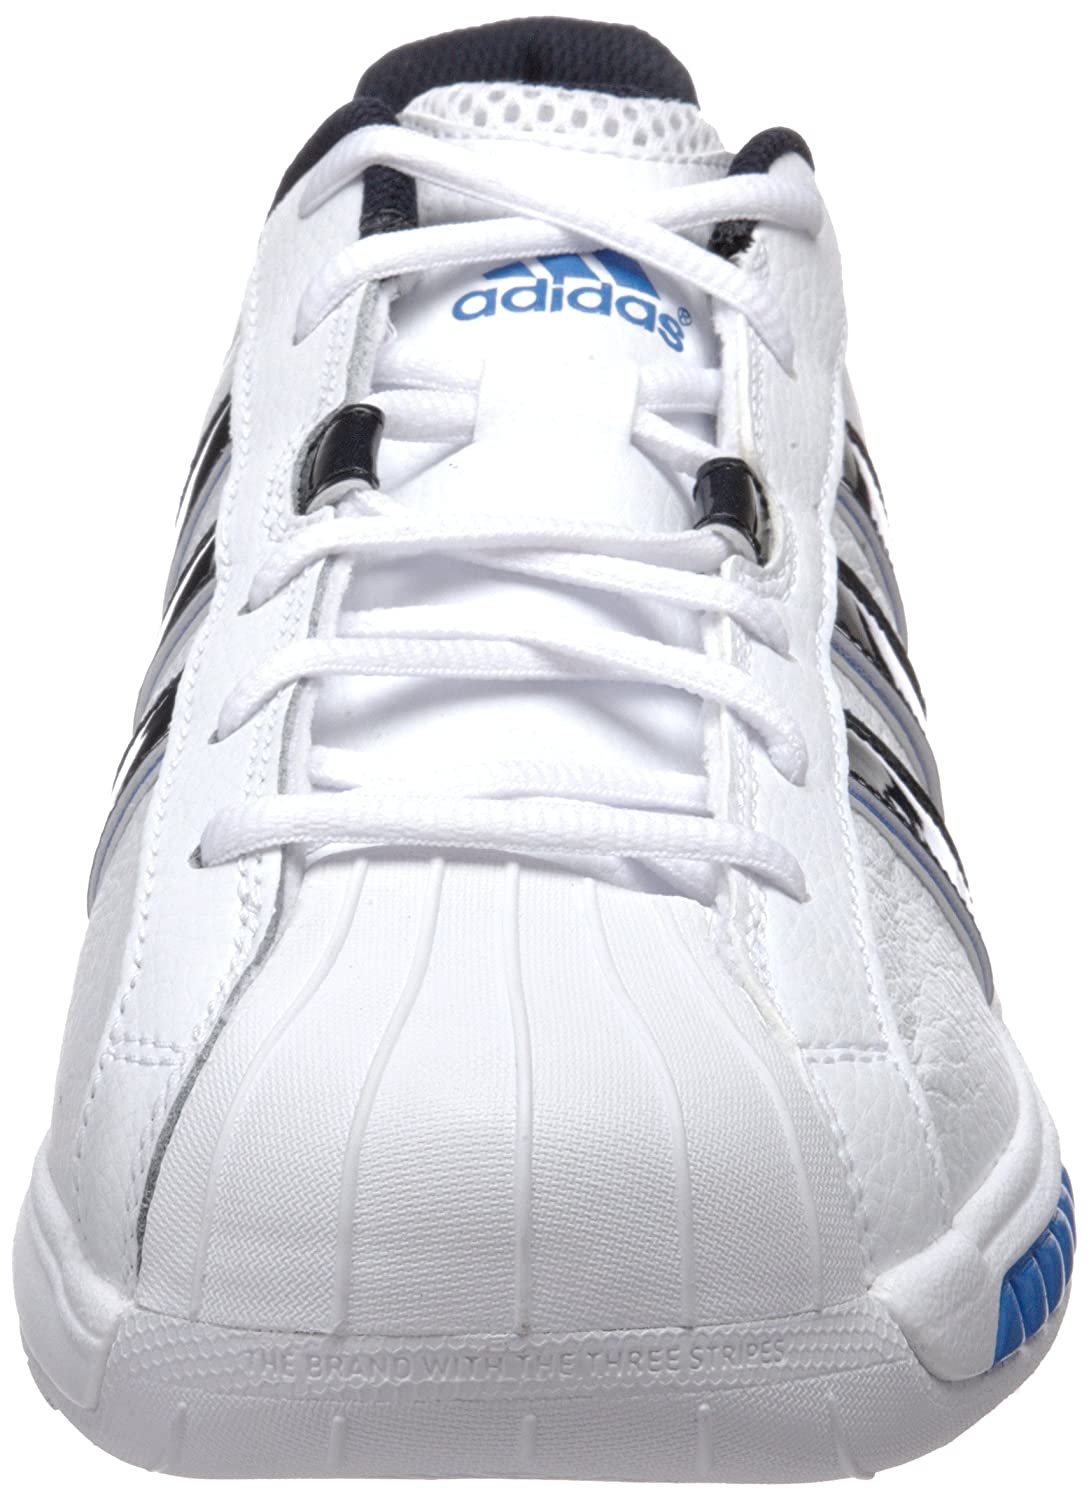 Amazon.com | adidas Men\u0027s Superstar 3G Speed Basketball Shoe, Running  White/Dark Navy/Fresh Blue, 6.5 M US | Road Running